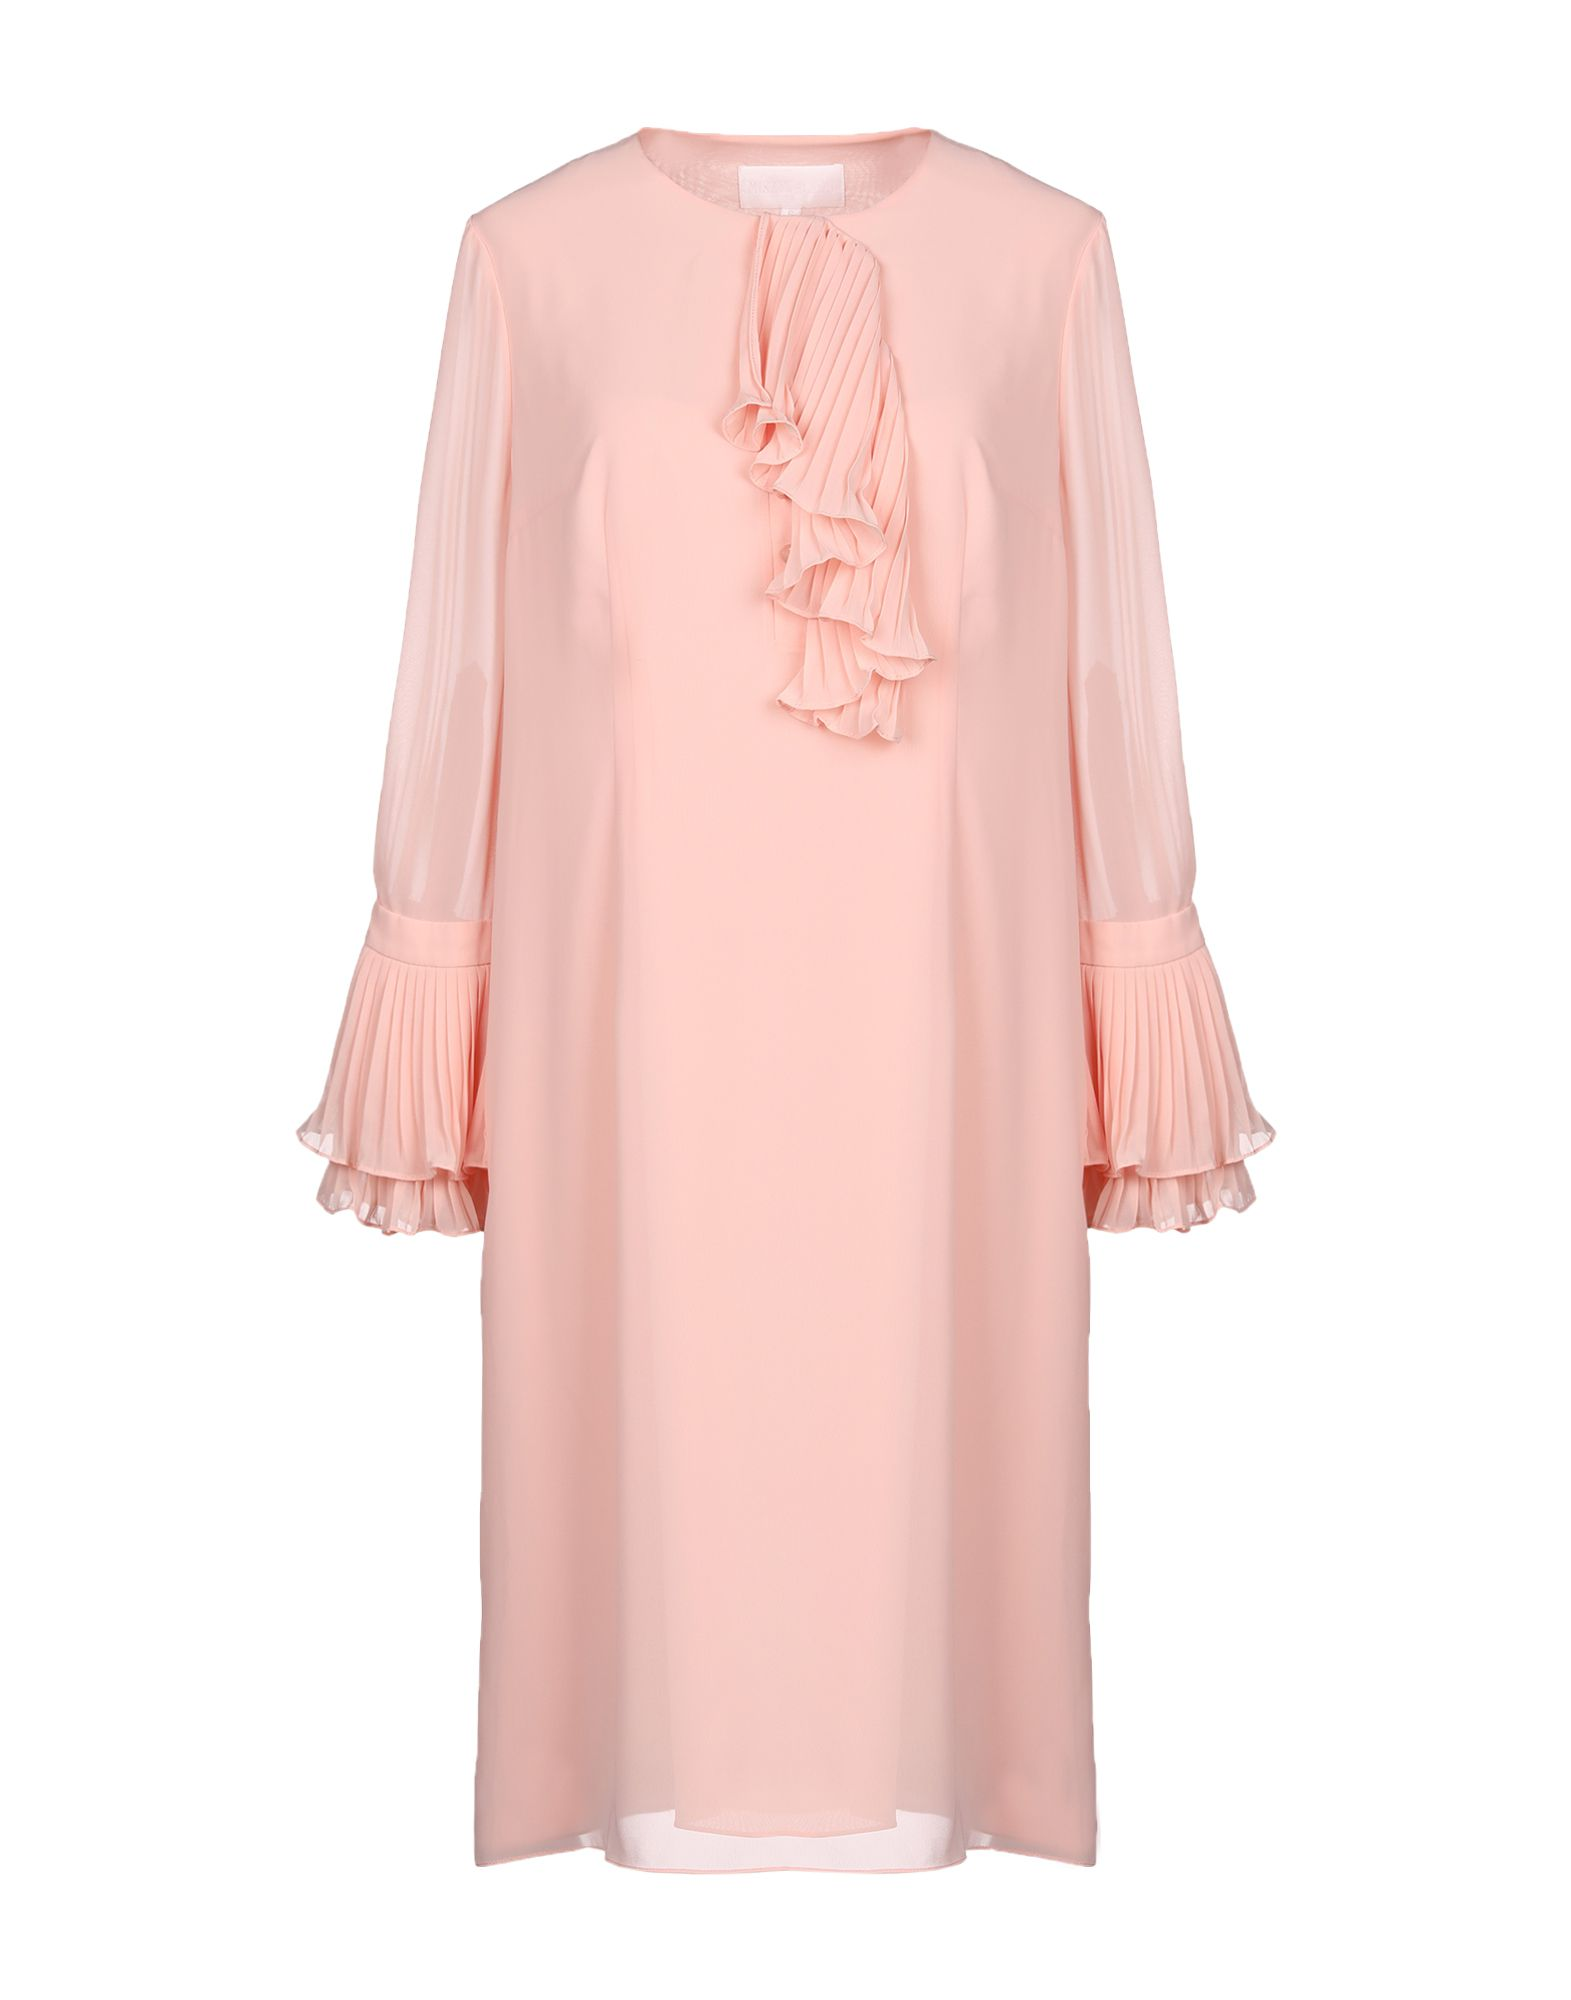 MIKAEL AGHAL Knee-Length Dresses in Salmon Pink